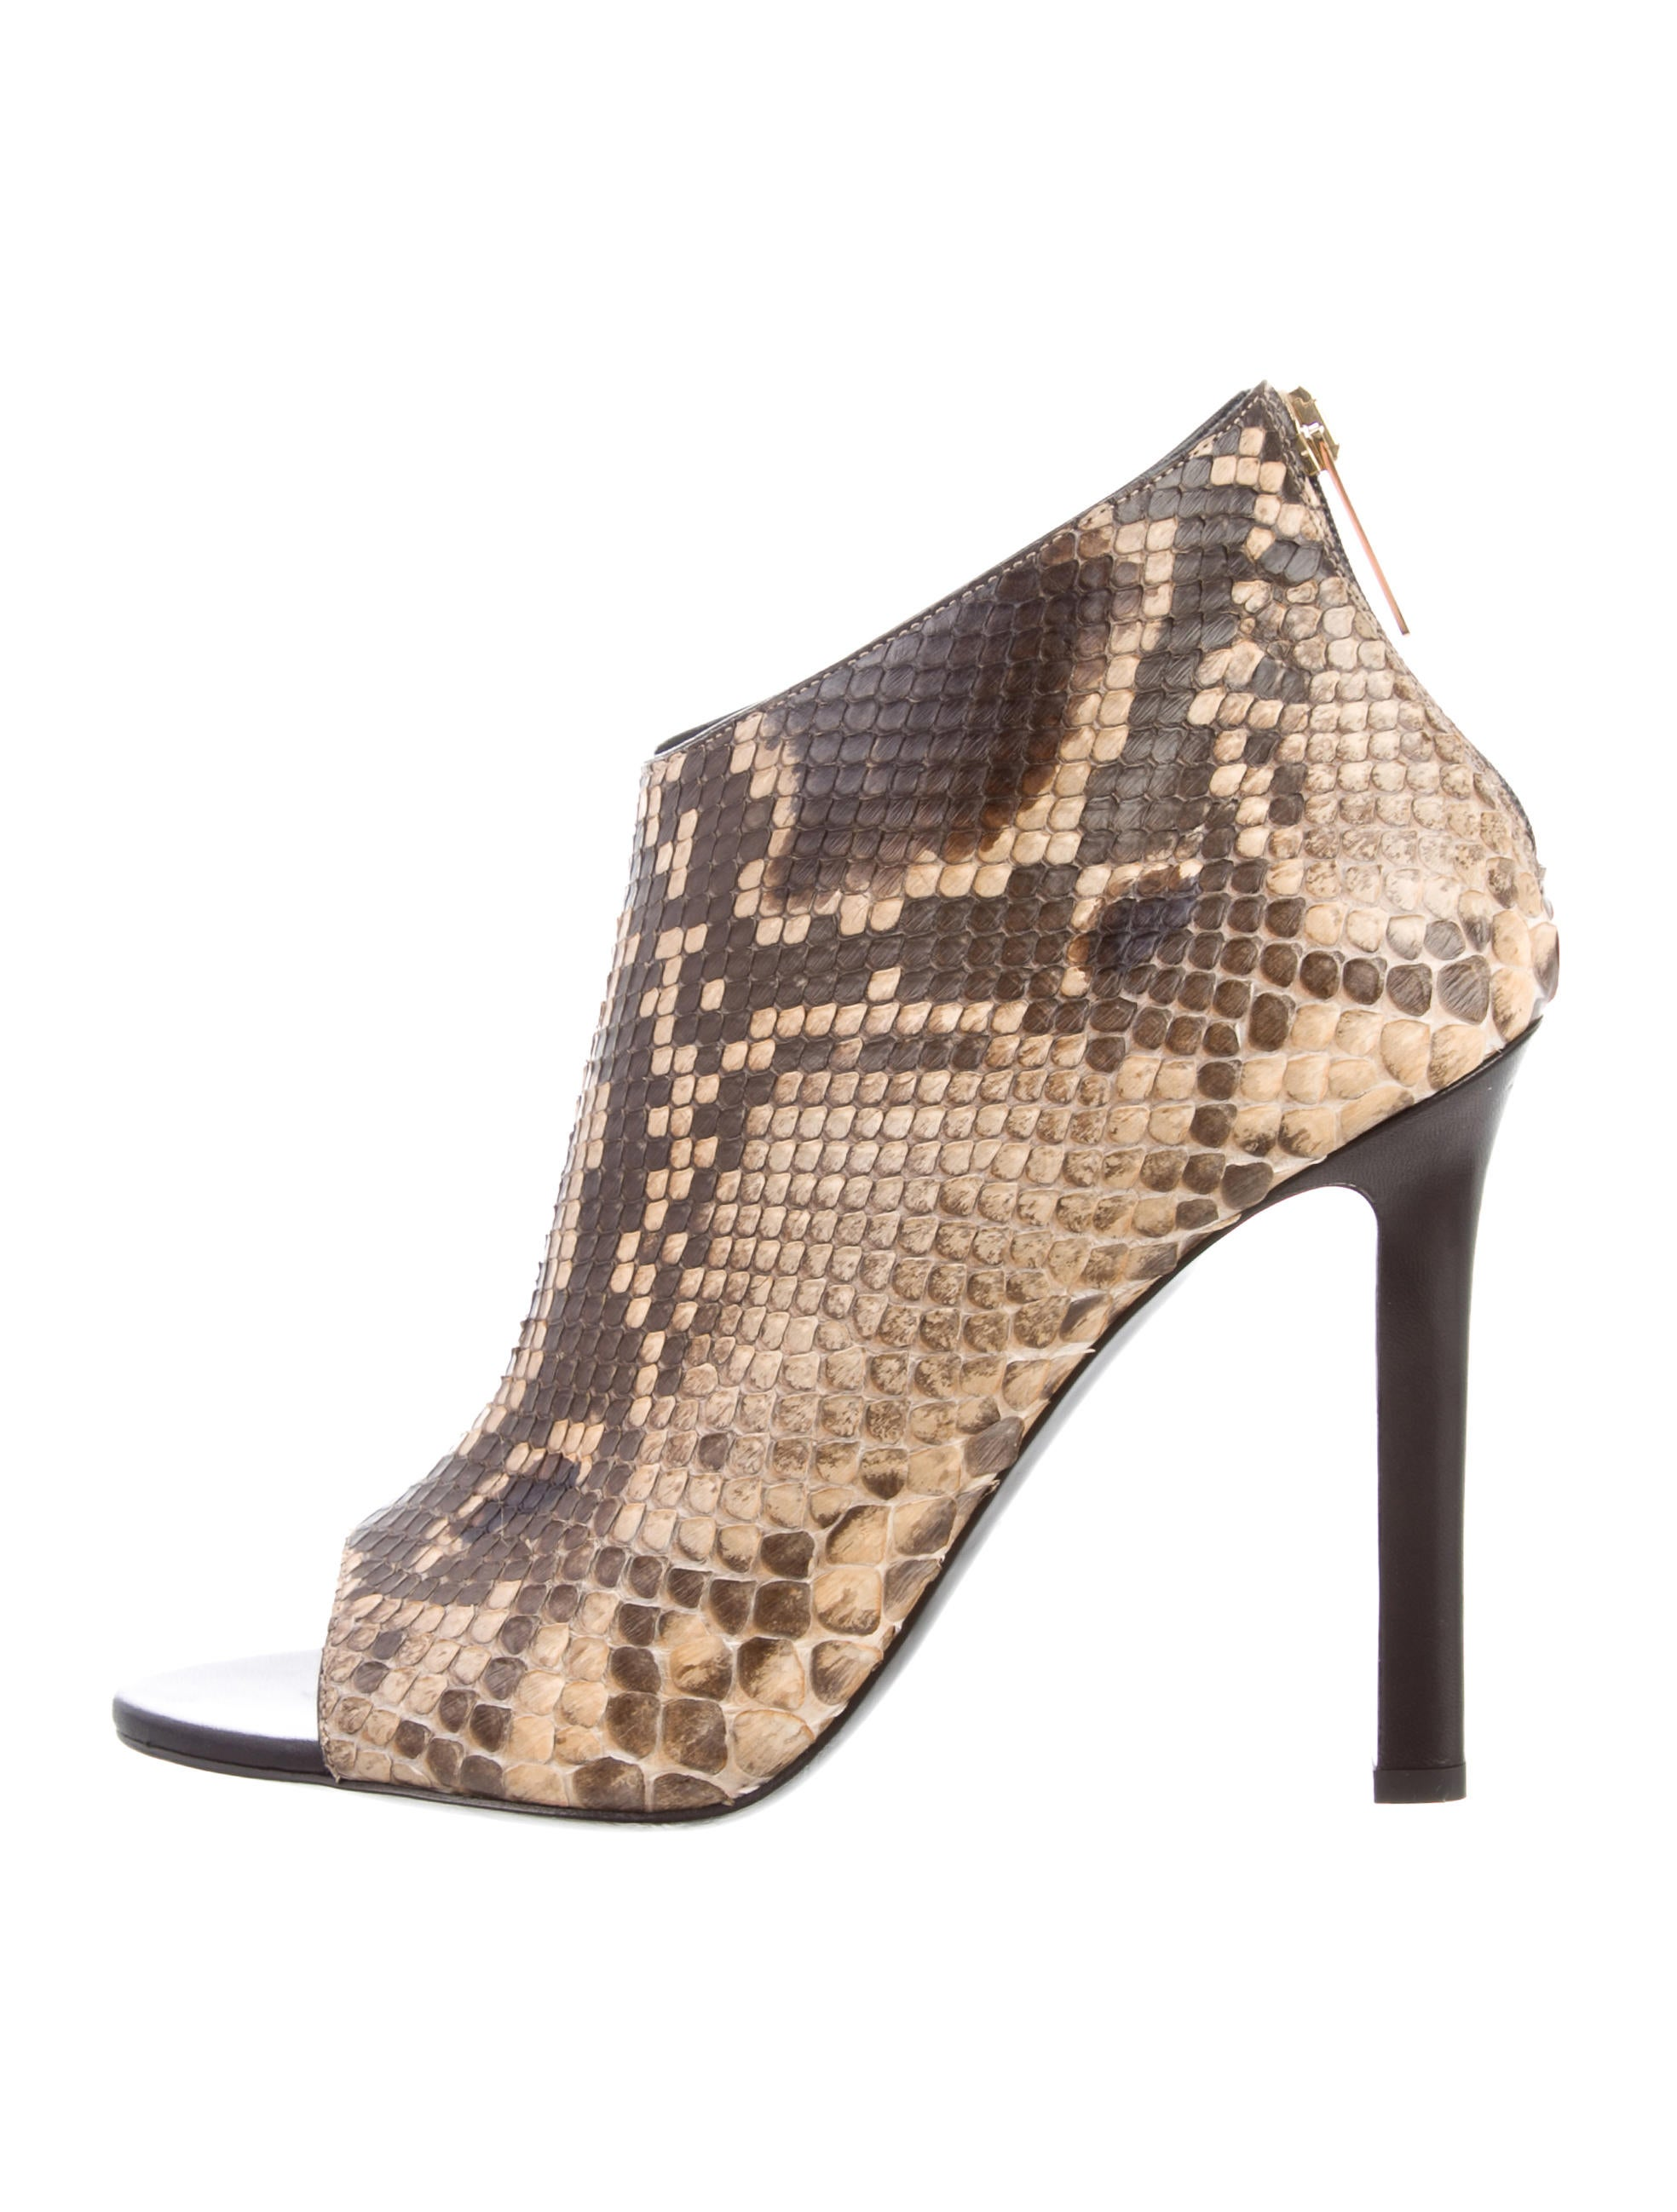 pay with paypal sale online cheap amazon Tamara Mellon Python Peep-Toe Ankle Boots wXiOI